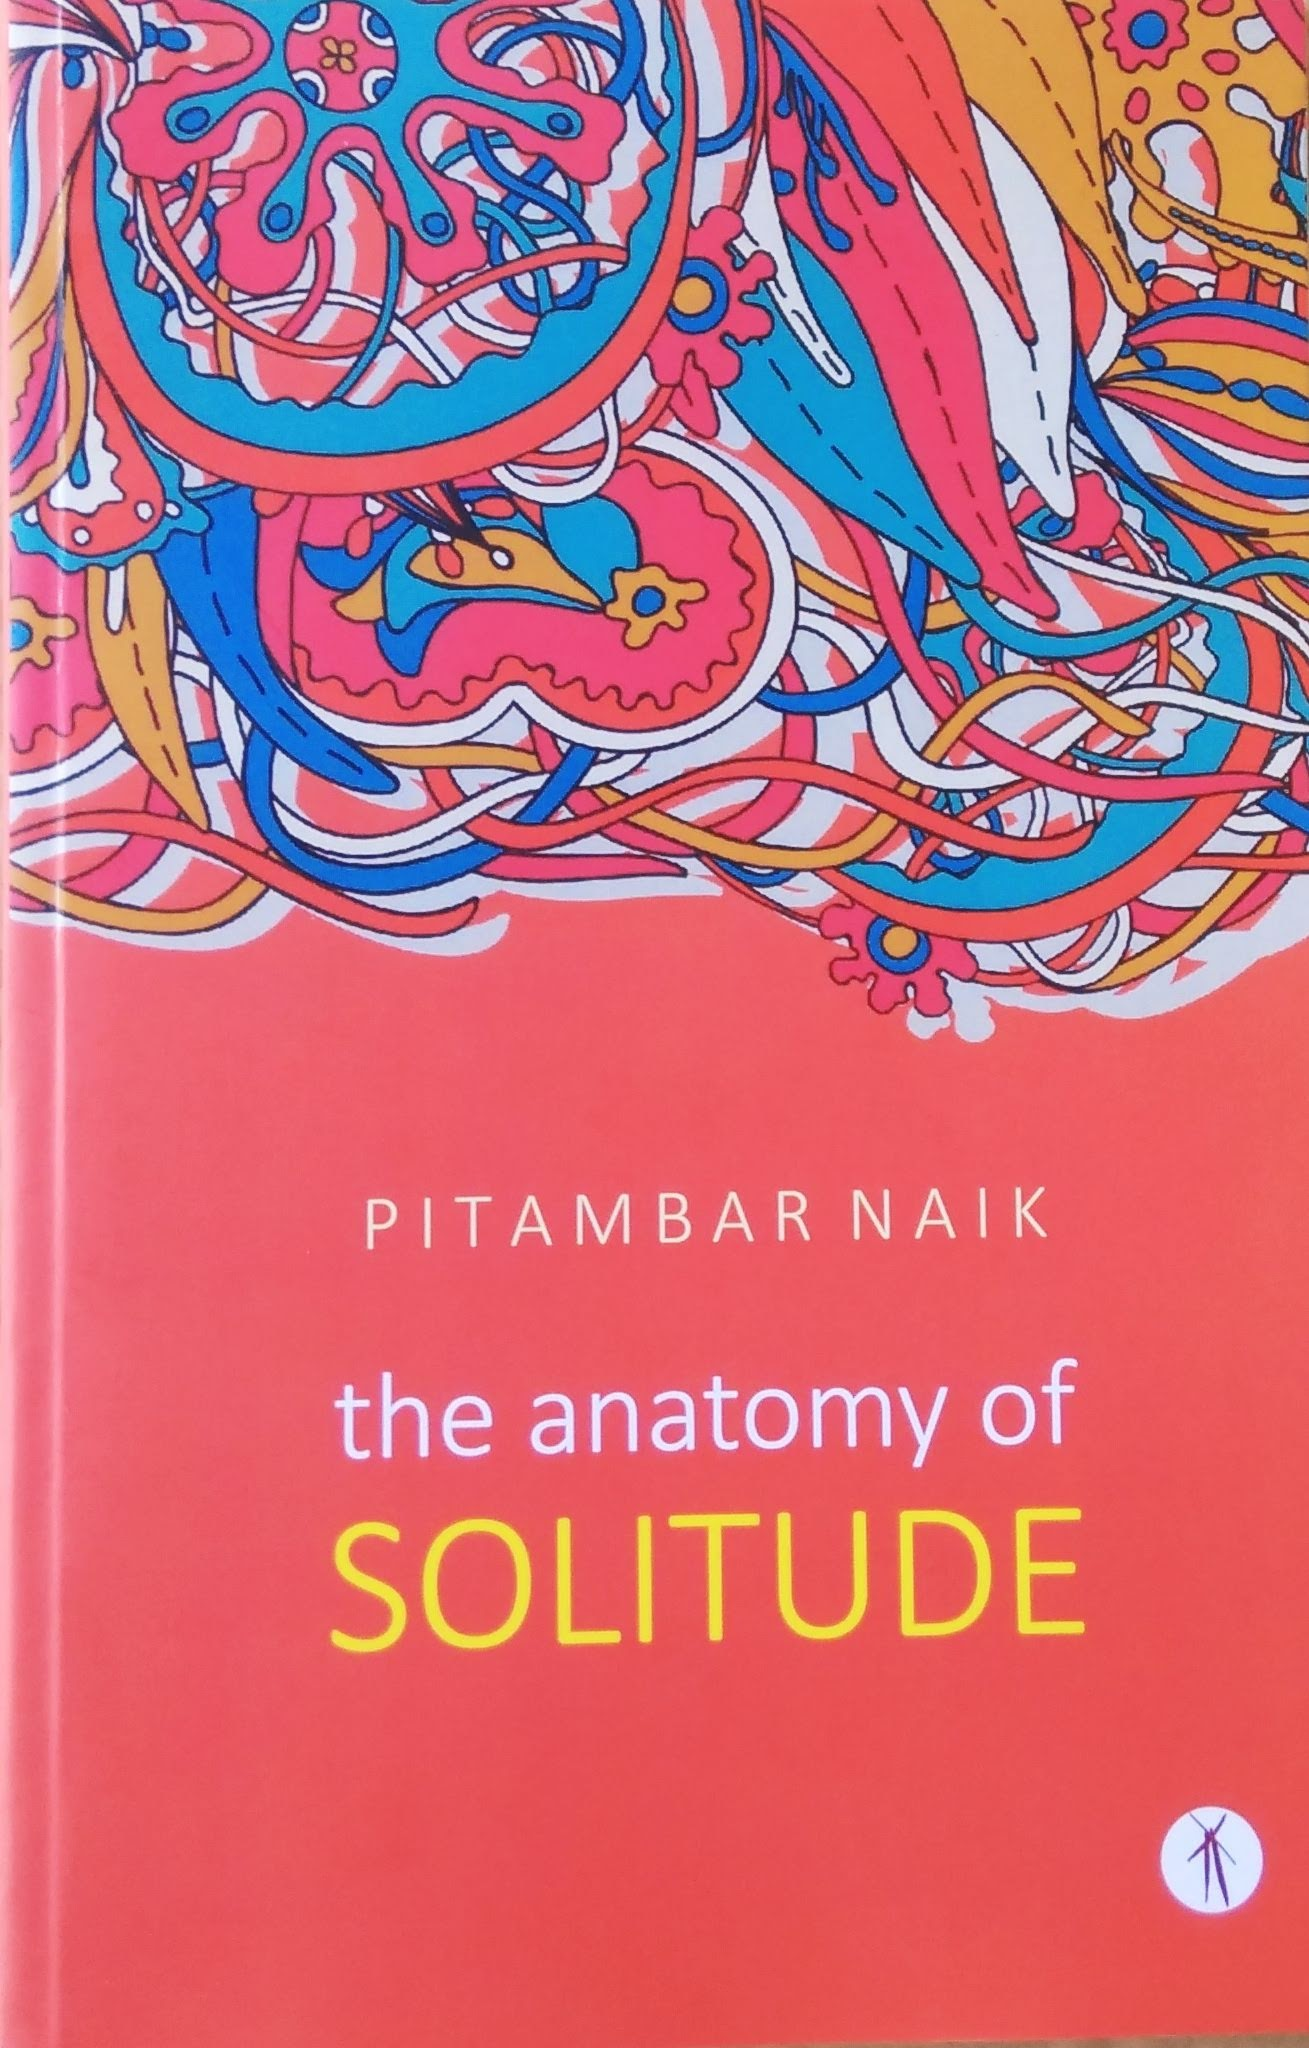 Book Review - The Anatomy of Solitude